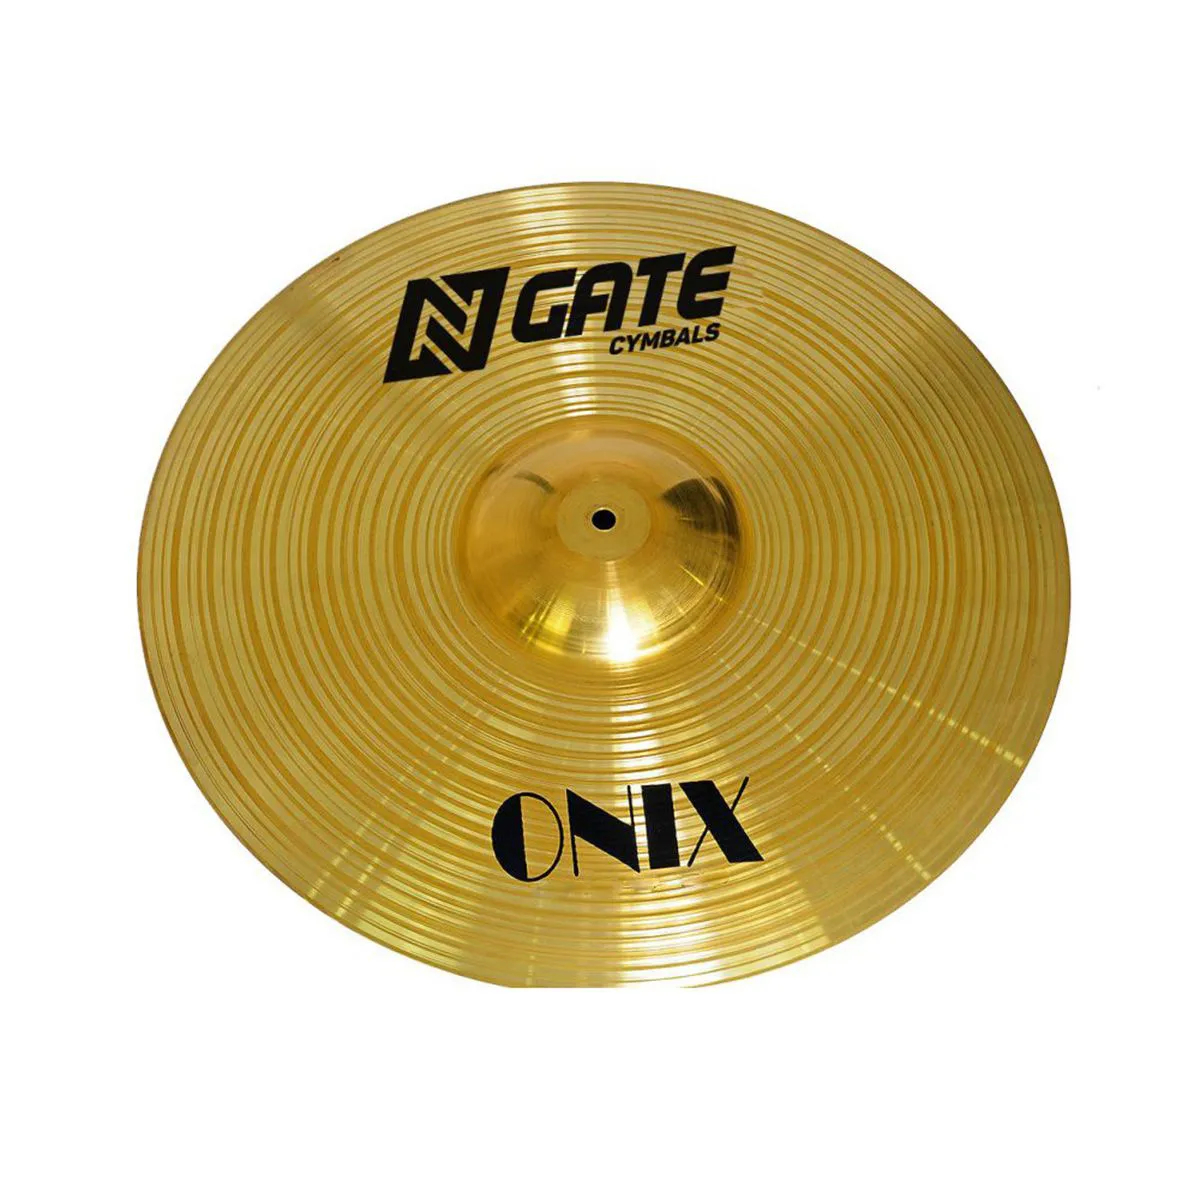 Prato de Ataque N.gate LT14MC Onix Series 14 Medium Crash